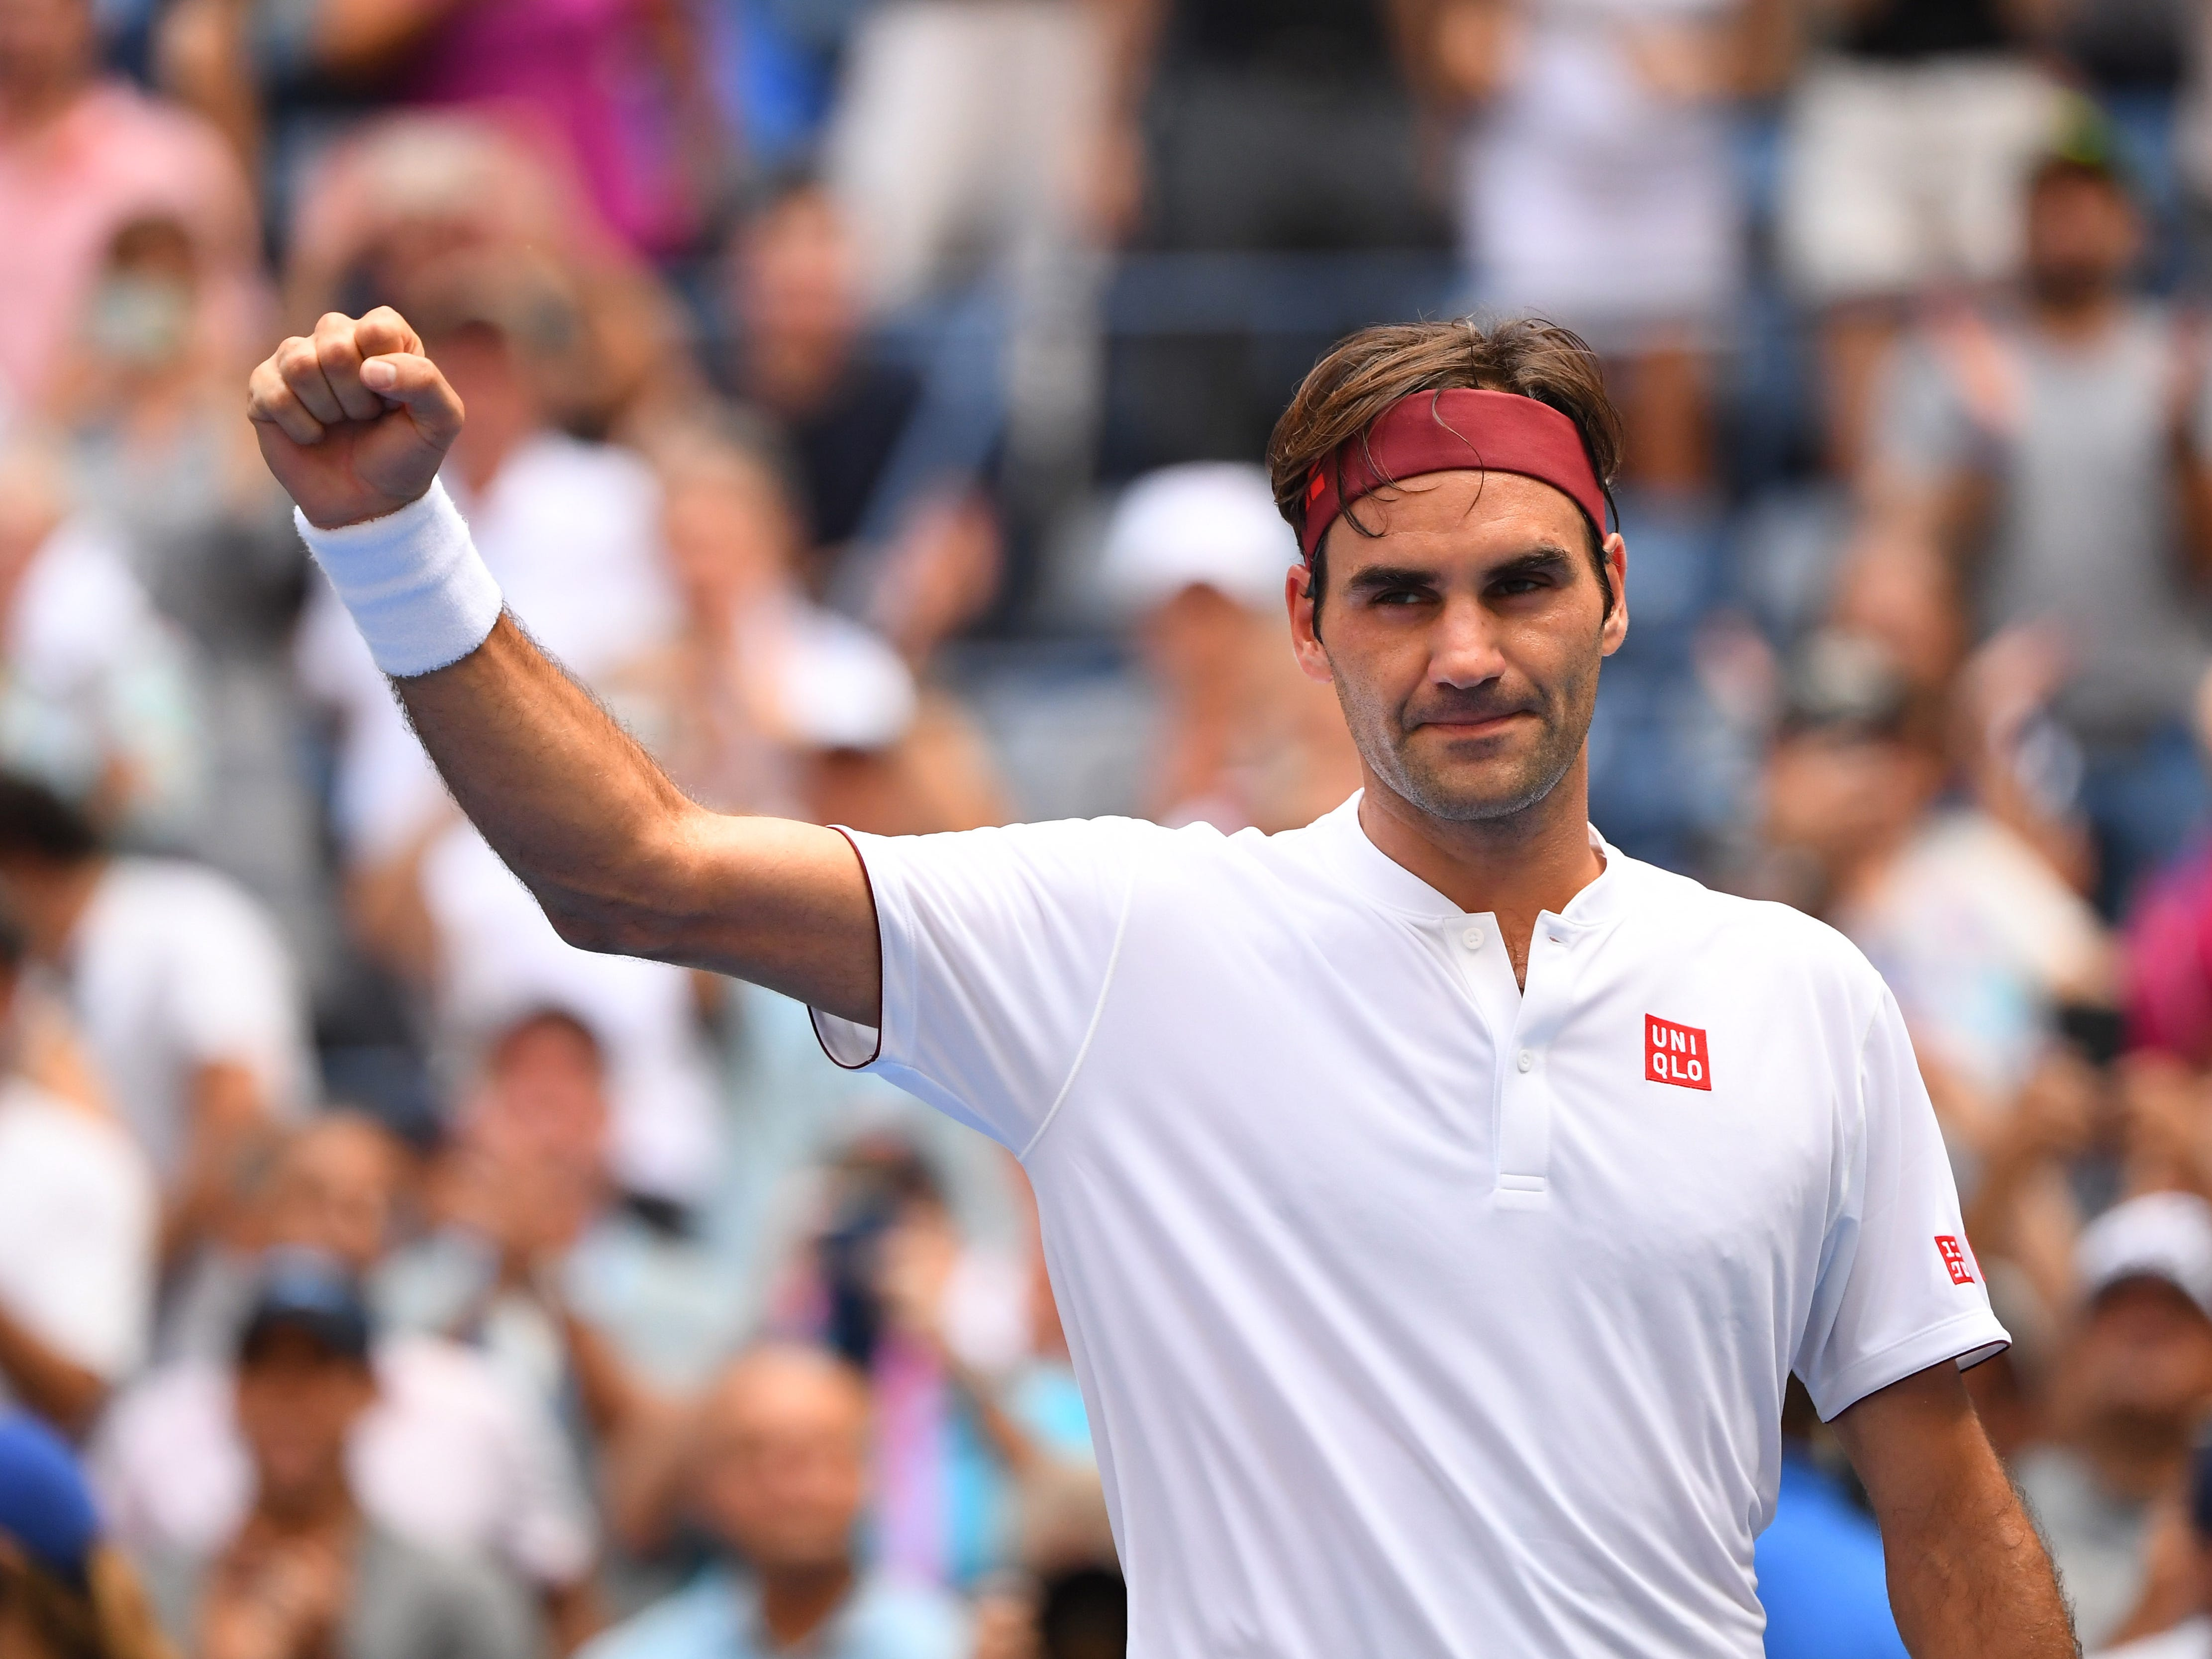 Roger Federer of Switzerland moves into the third round with a 7-5, 6-4, 6-4 win against Benoit Paire of France.